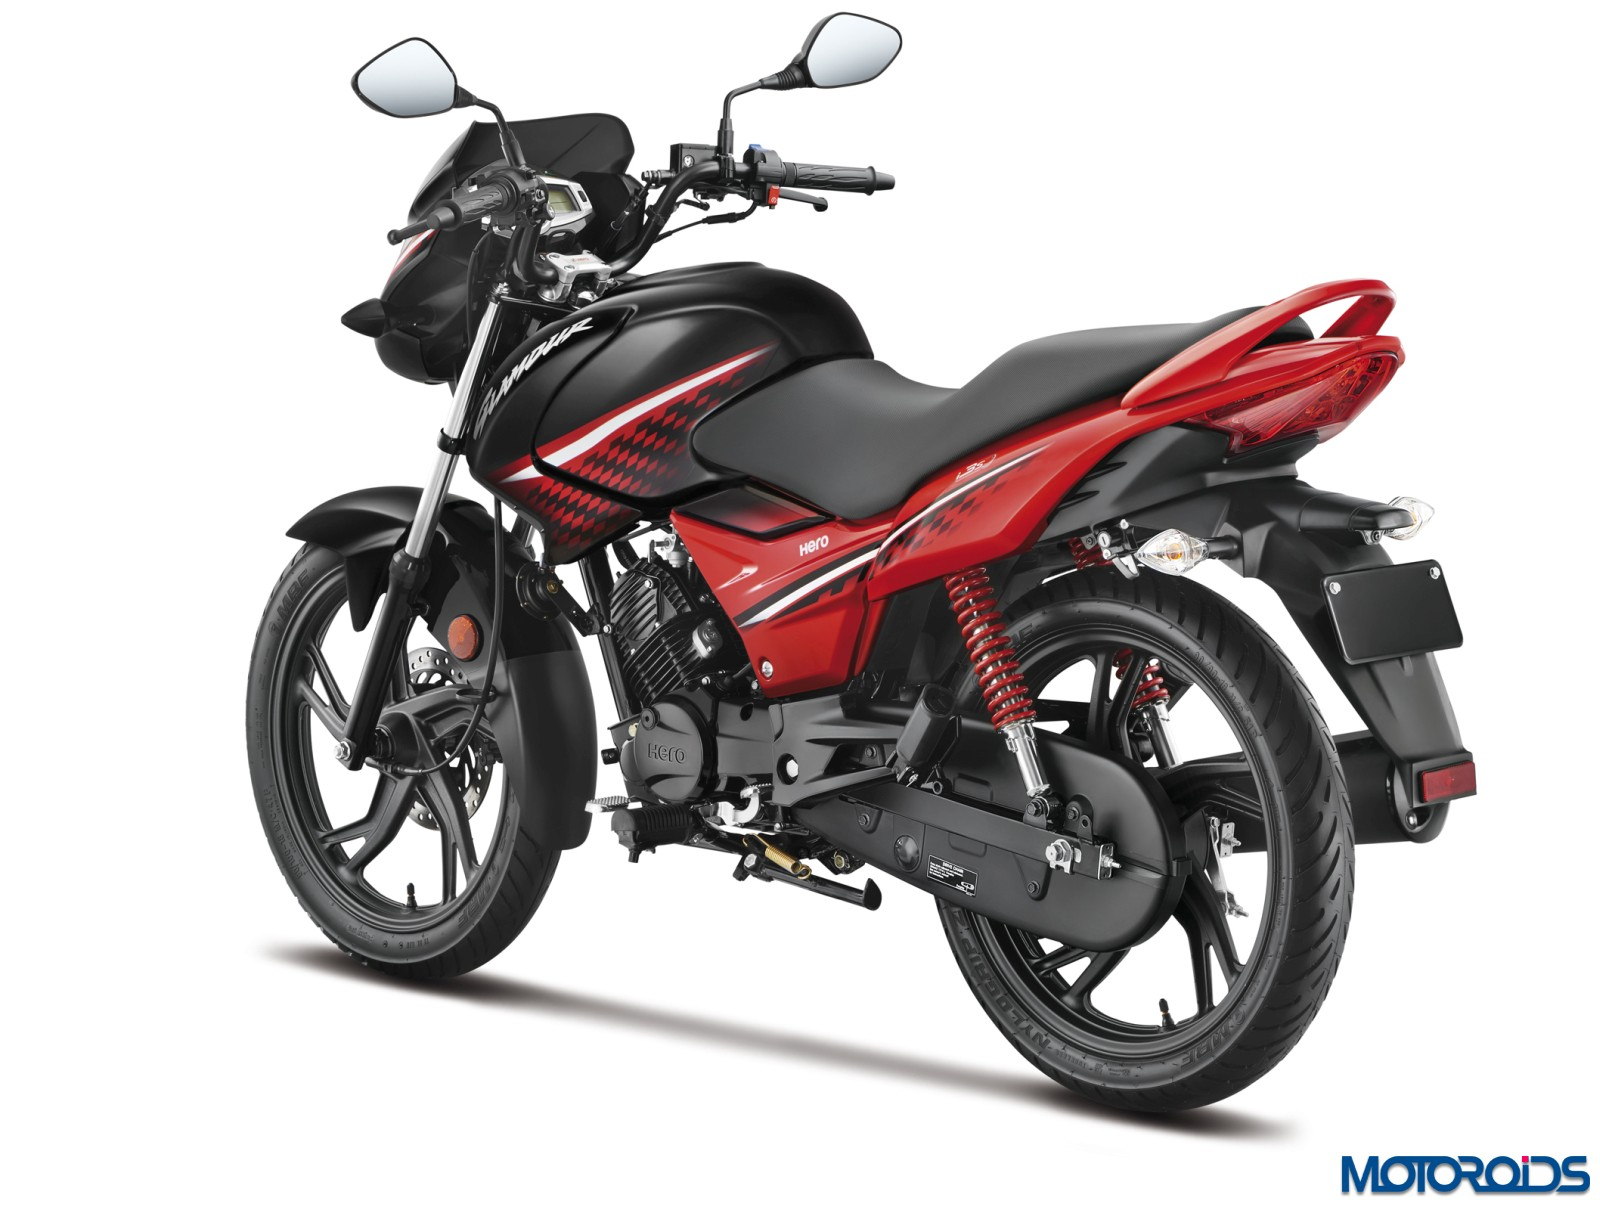 hero motocorp Check out for the latest news on hero motocorp along with hero motocorp live news at times of india.